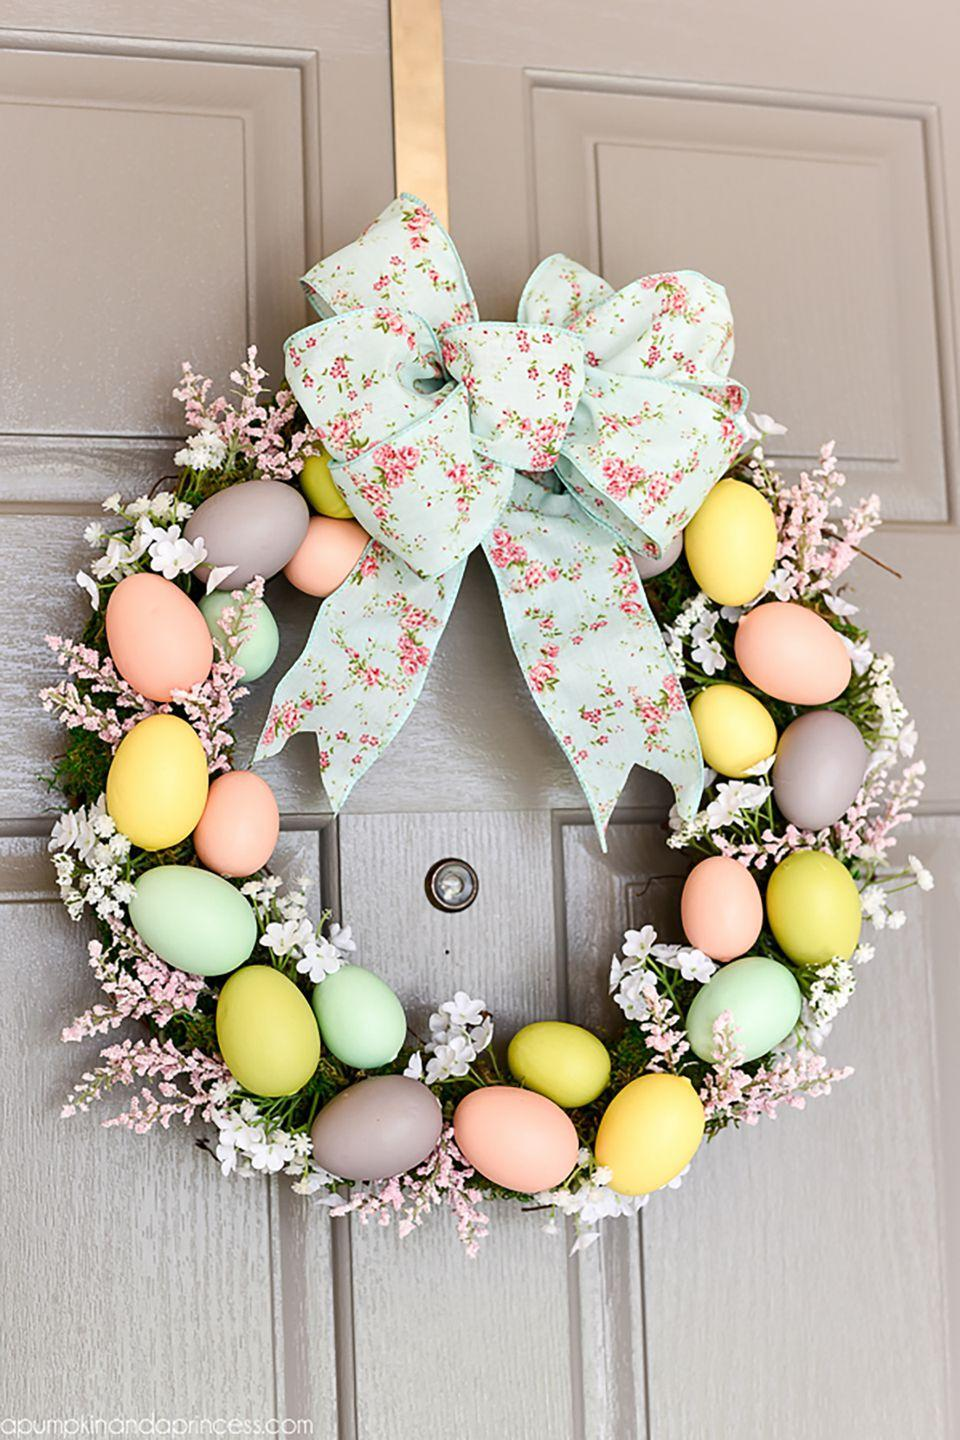 "<p>This <a href=""https://www.countryliving.com/diy-crafts/g4088/easter-wreath/"" rel=""nofollow noopener"" target=""_blank"" data-ylk=""slk:handmade wreath"" class=""link rapid-noclick-resp"">handmade wreath</a>, crafted using moss, pastel Easter eggs, and flowers, signals to those entering your home that you're ready to celebrate spring!</p><p><strong>Get the tutorial at <a href=""http://apumpkinandaprincess.com/2016/03/diy-easter-egg-wreath.html"" rel=""nofollow noopener"" target=""_blank"" data-ylk=""slk:A Pumpkin And A Princess"" class=""link rapid-noclick-resp"">A Pumpkin And A Princess</a>. </strong></p><p><a class=""link rapid-noclick-resp"" href=""https://www.amazon.com/Sntieecr-Natural-Grapevine-Wreaths-Thanksgiving/dp/B08QYLNXLB/ref=sr_1_1_sspa?tag=syn-yahoo-20&ascsubtag=%5Bartid%7C10050.g.1652%5Bsrc%7Cyahoo-us"" rel=""nofollow noopener"" target=""_blank"" data-ylk=""slk:SHOP GRAPEVINE WREATH""><strong>SHOP GRAPEVINE WREATH</strong></a></p>"